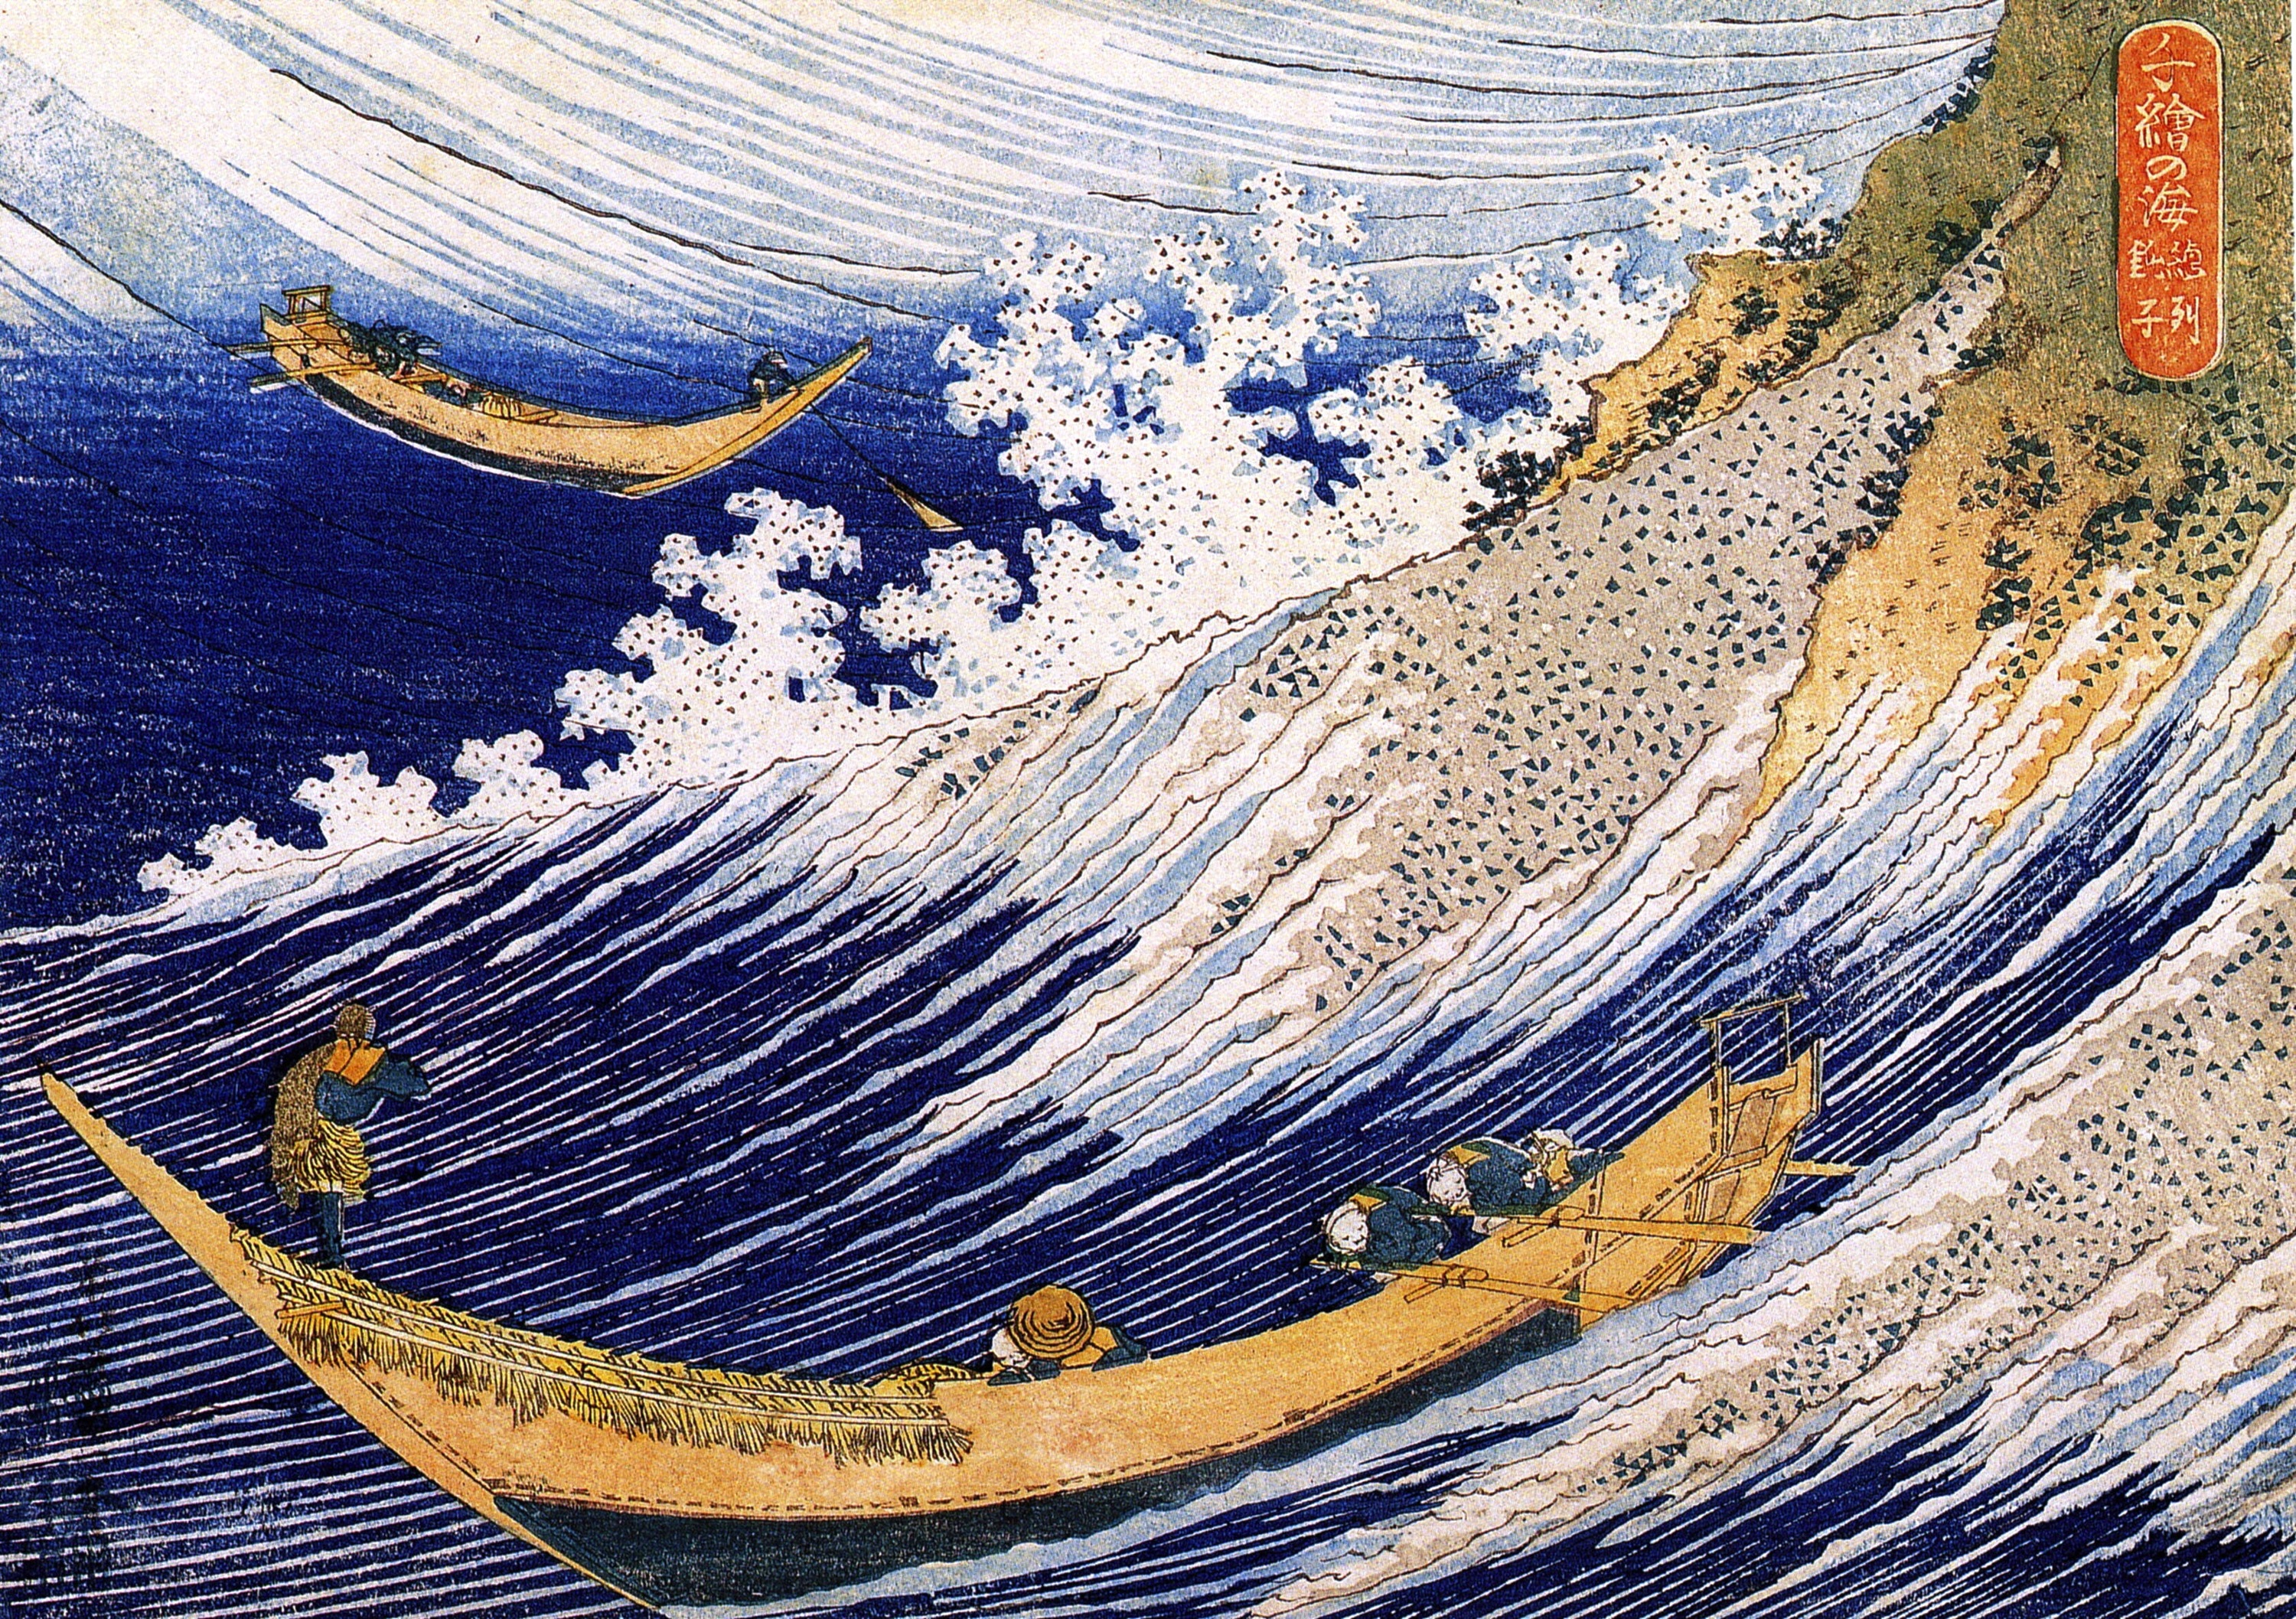 Hokusai at the Grand Palais